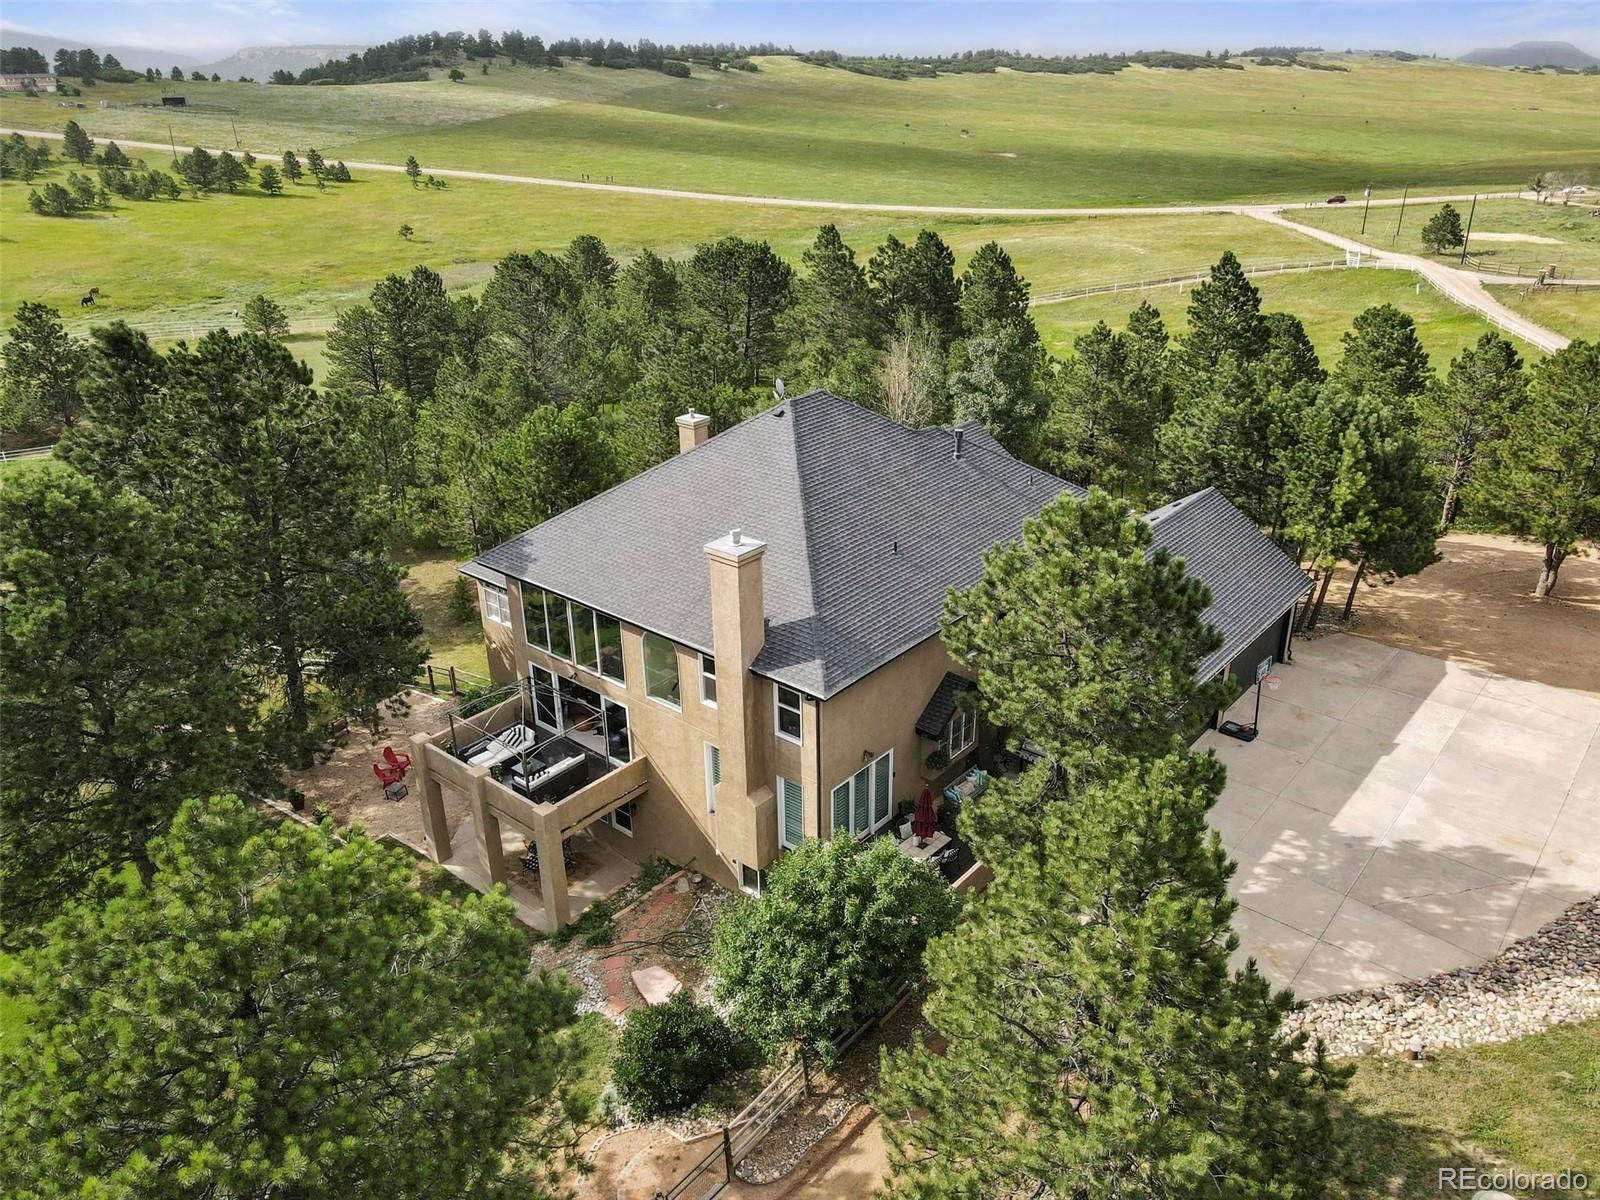 Stunning *sub-dividable* 21 acre custom horse property is the only modern estate of its kind with an unparalleled 2 minute drive to I25. Five minutes to Safeway and restaurants in a tranquil park-like setting with views from every oversized window! True Colorado luxury living combined with quick access to South Denver and Colorado Springs simply cannot be found anywhere else. Live on 21 gorgeous treed acres only 25 minutes to Park Meadows Shopping Center in Denver and 15 minutes to the Air Force Academy with Palmer Lake and Monument town centers each less than five minutes away and miles of trails a two minute trailer ride at Greenland Ranch- El Paso County taxes right on the Douglas County line! All 7400 sqft loaded with upgrades including real wood floors, oversized windows & plantation shutters, 21 ft ceilings in foyer with grand staircase and enormous great room with huge fireplace & access to large deck, 10 ft ceilings in basement with LVP, fireplace, wet bar & wine cellar w/ full guest bathroom and fifth and sixth beds framed in with doors and walk in closets (not dry walled - currently a gym & meditation room) and 7th jack & Jill bath roughed in & framed between, 10 ft ceilings in Master Bedroom w/ private deck, sitting area w/ fireplace and huge 5 piece bath and closet, 12 ft ceilings in the home office with fireplace, 9 ft ceilings in dream kitchen with 10 ft hard rock maple island, 2 ovens, 5 burner gas range, leather finish granite, remodeled mud/laundry room, 3 beds w/ en suite upstairs overlooking 2 story great room, 2x6 construction, 5 gas fireplaces, 2 gas stubs (no propane tanks!), 4 decks/patios for outdoor entertaining, 36x36 4-stall barn w/ tack room, two loafing sheds and paddocks, 70 x 160 ft arena with all 21 acres fenced for horses & over 1 acre fenced for dogs, no covenants, RV parking w/H2O & power! A rare find just 2 minutes to I25 w/ the new bridge at County Line - enjoy or subdivide into 5 acre lots for development in a prime location!